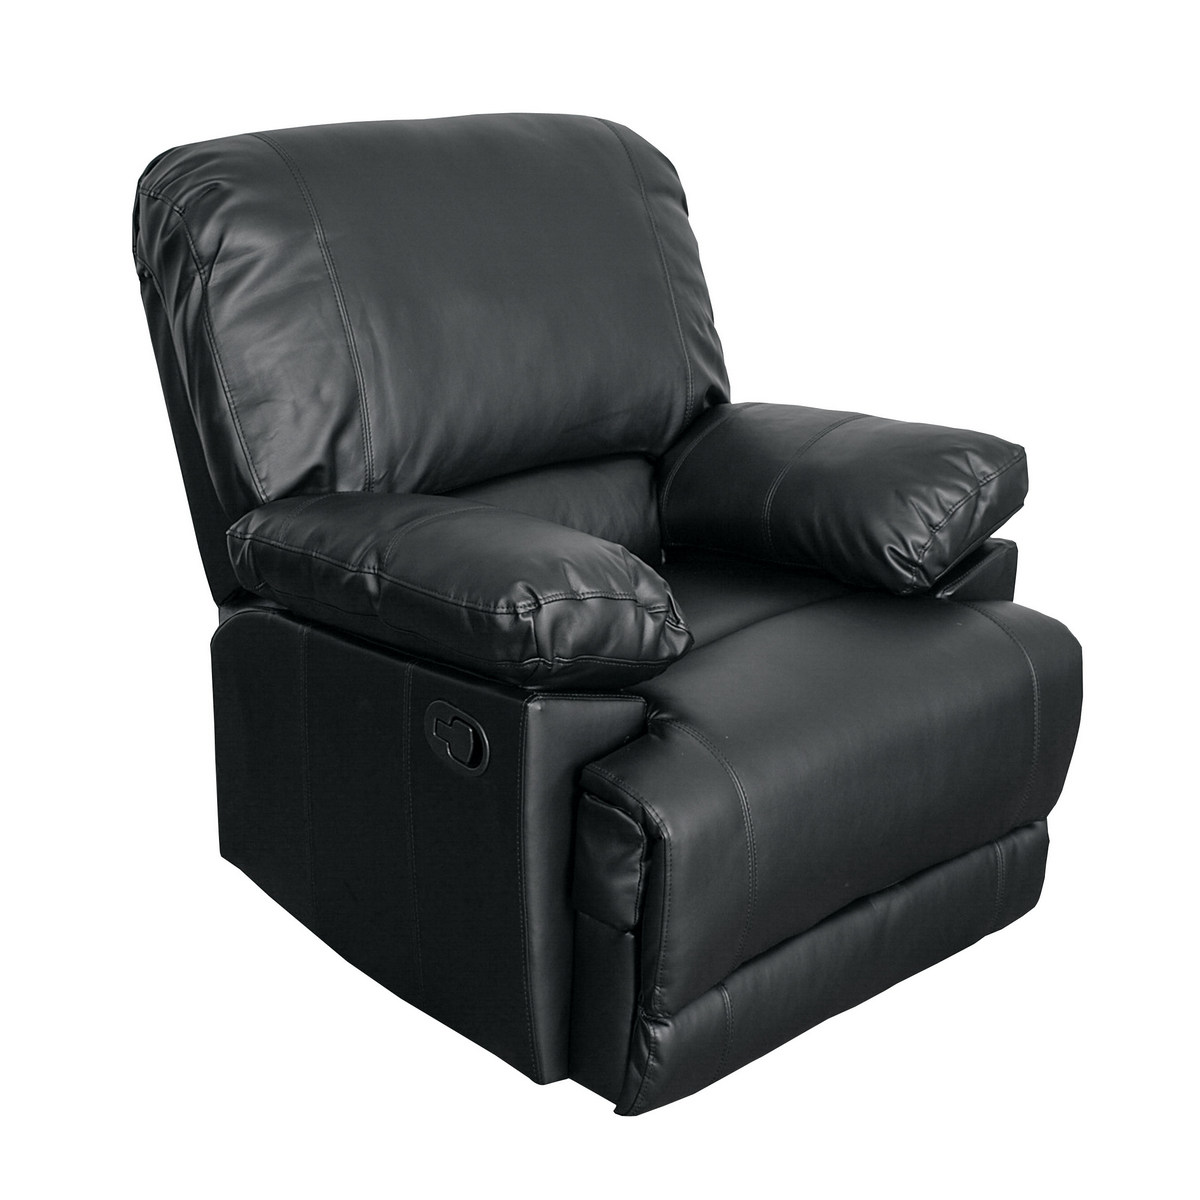 Corliving R Lea Black Bonded Leather Reclining Chair